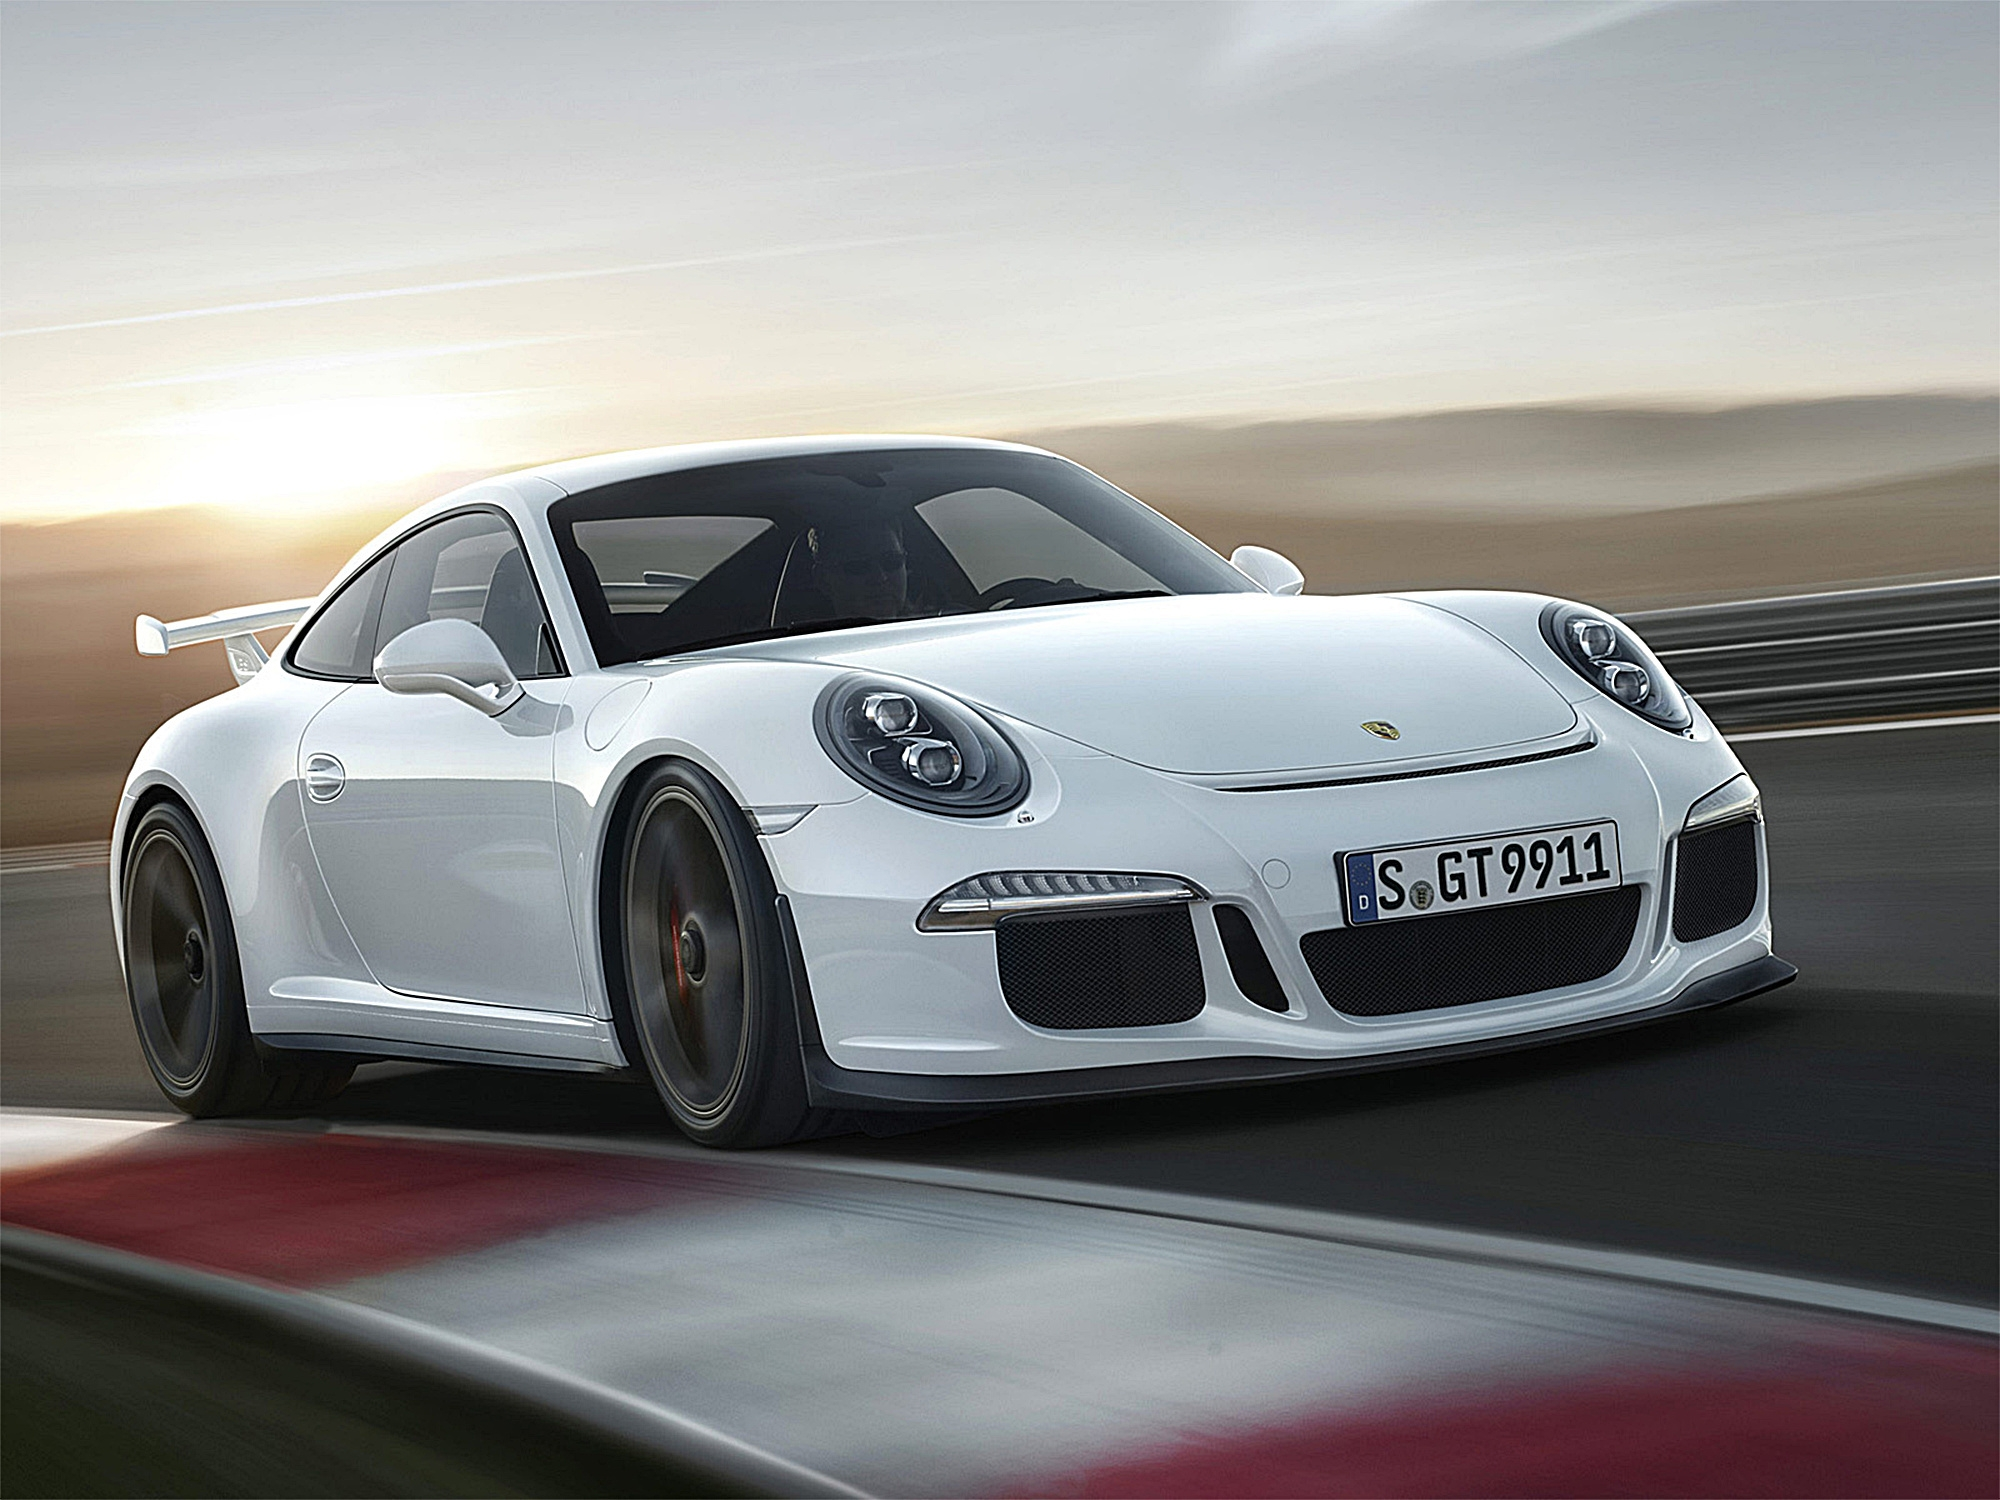 141140 download wallpaper Cars, Porsche 911 Gt3, Auto, Car, Machine screensavers and pictures for free